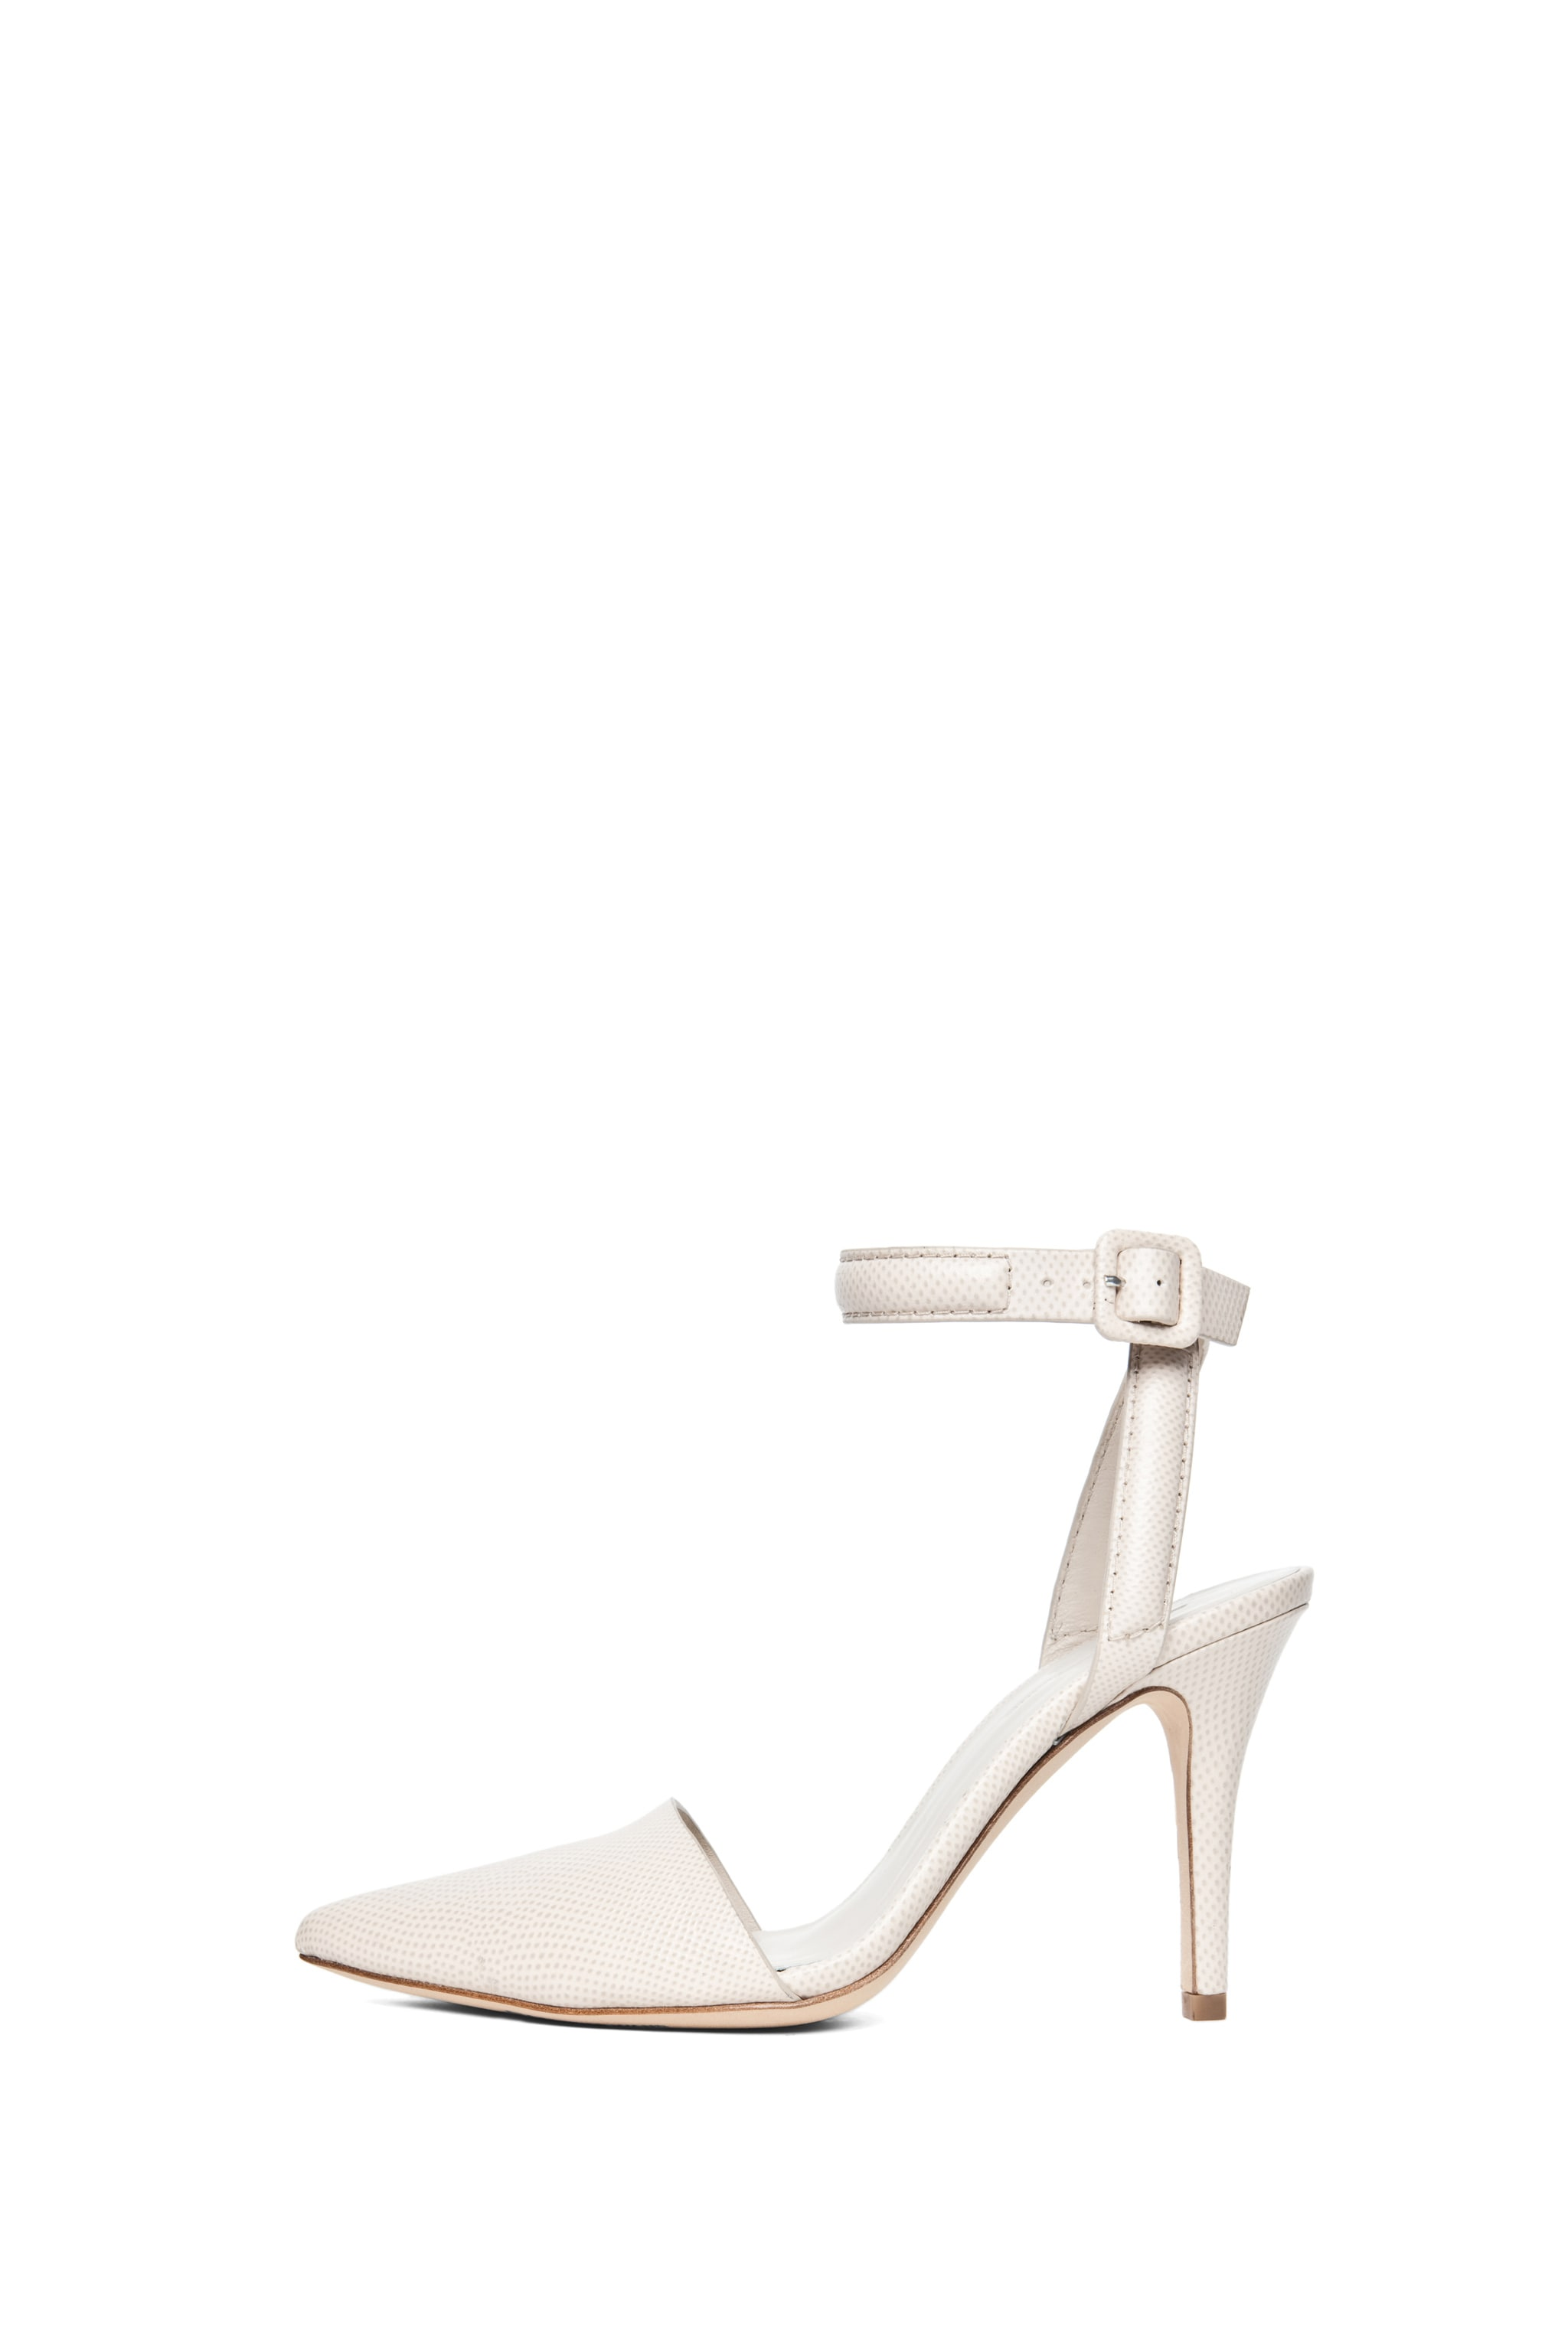 Image 1 of Alexander Wang Lovisa Python Embossed Calfskin Leather Pump in Bandage